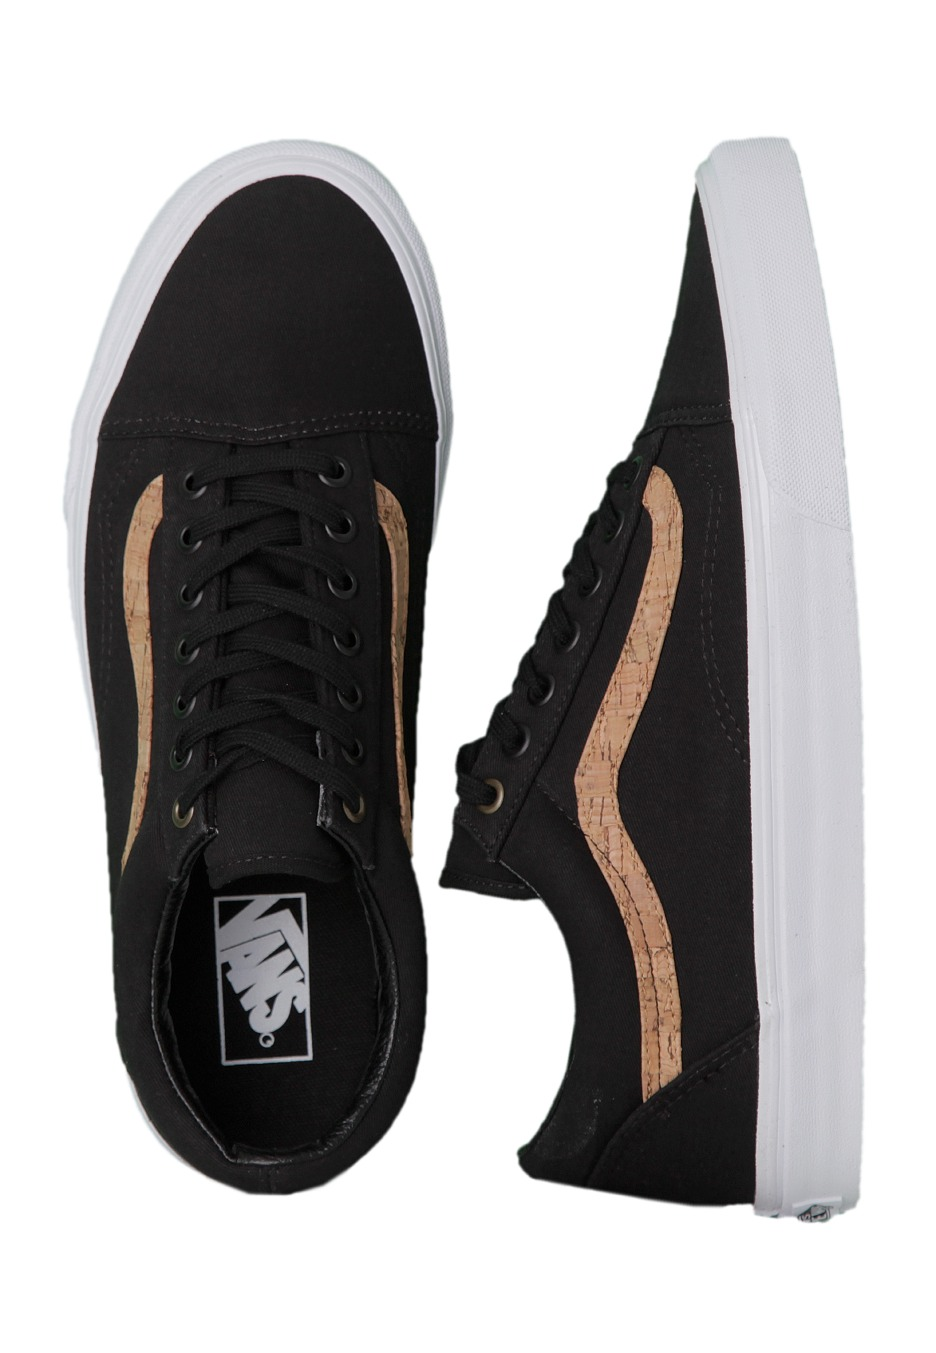 5a03b38051 Vans - Old Skool Cork Twill - Shoes - Impericon.com Worldwide